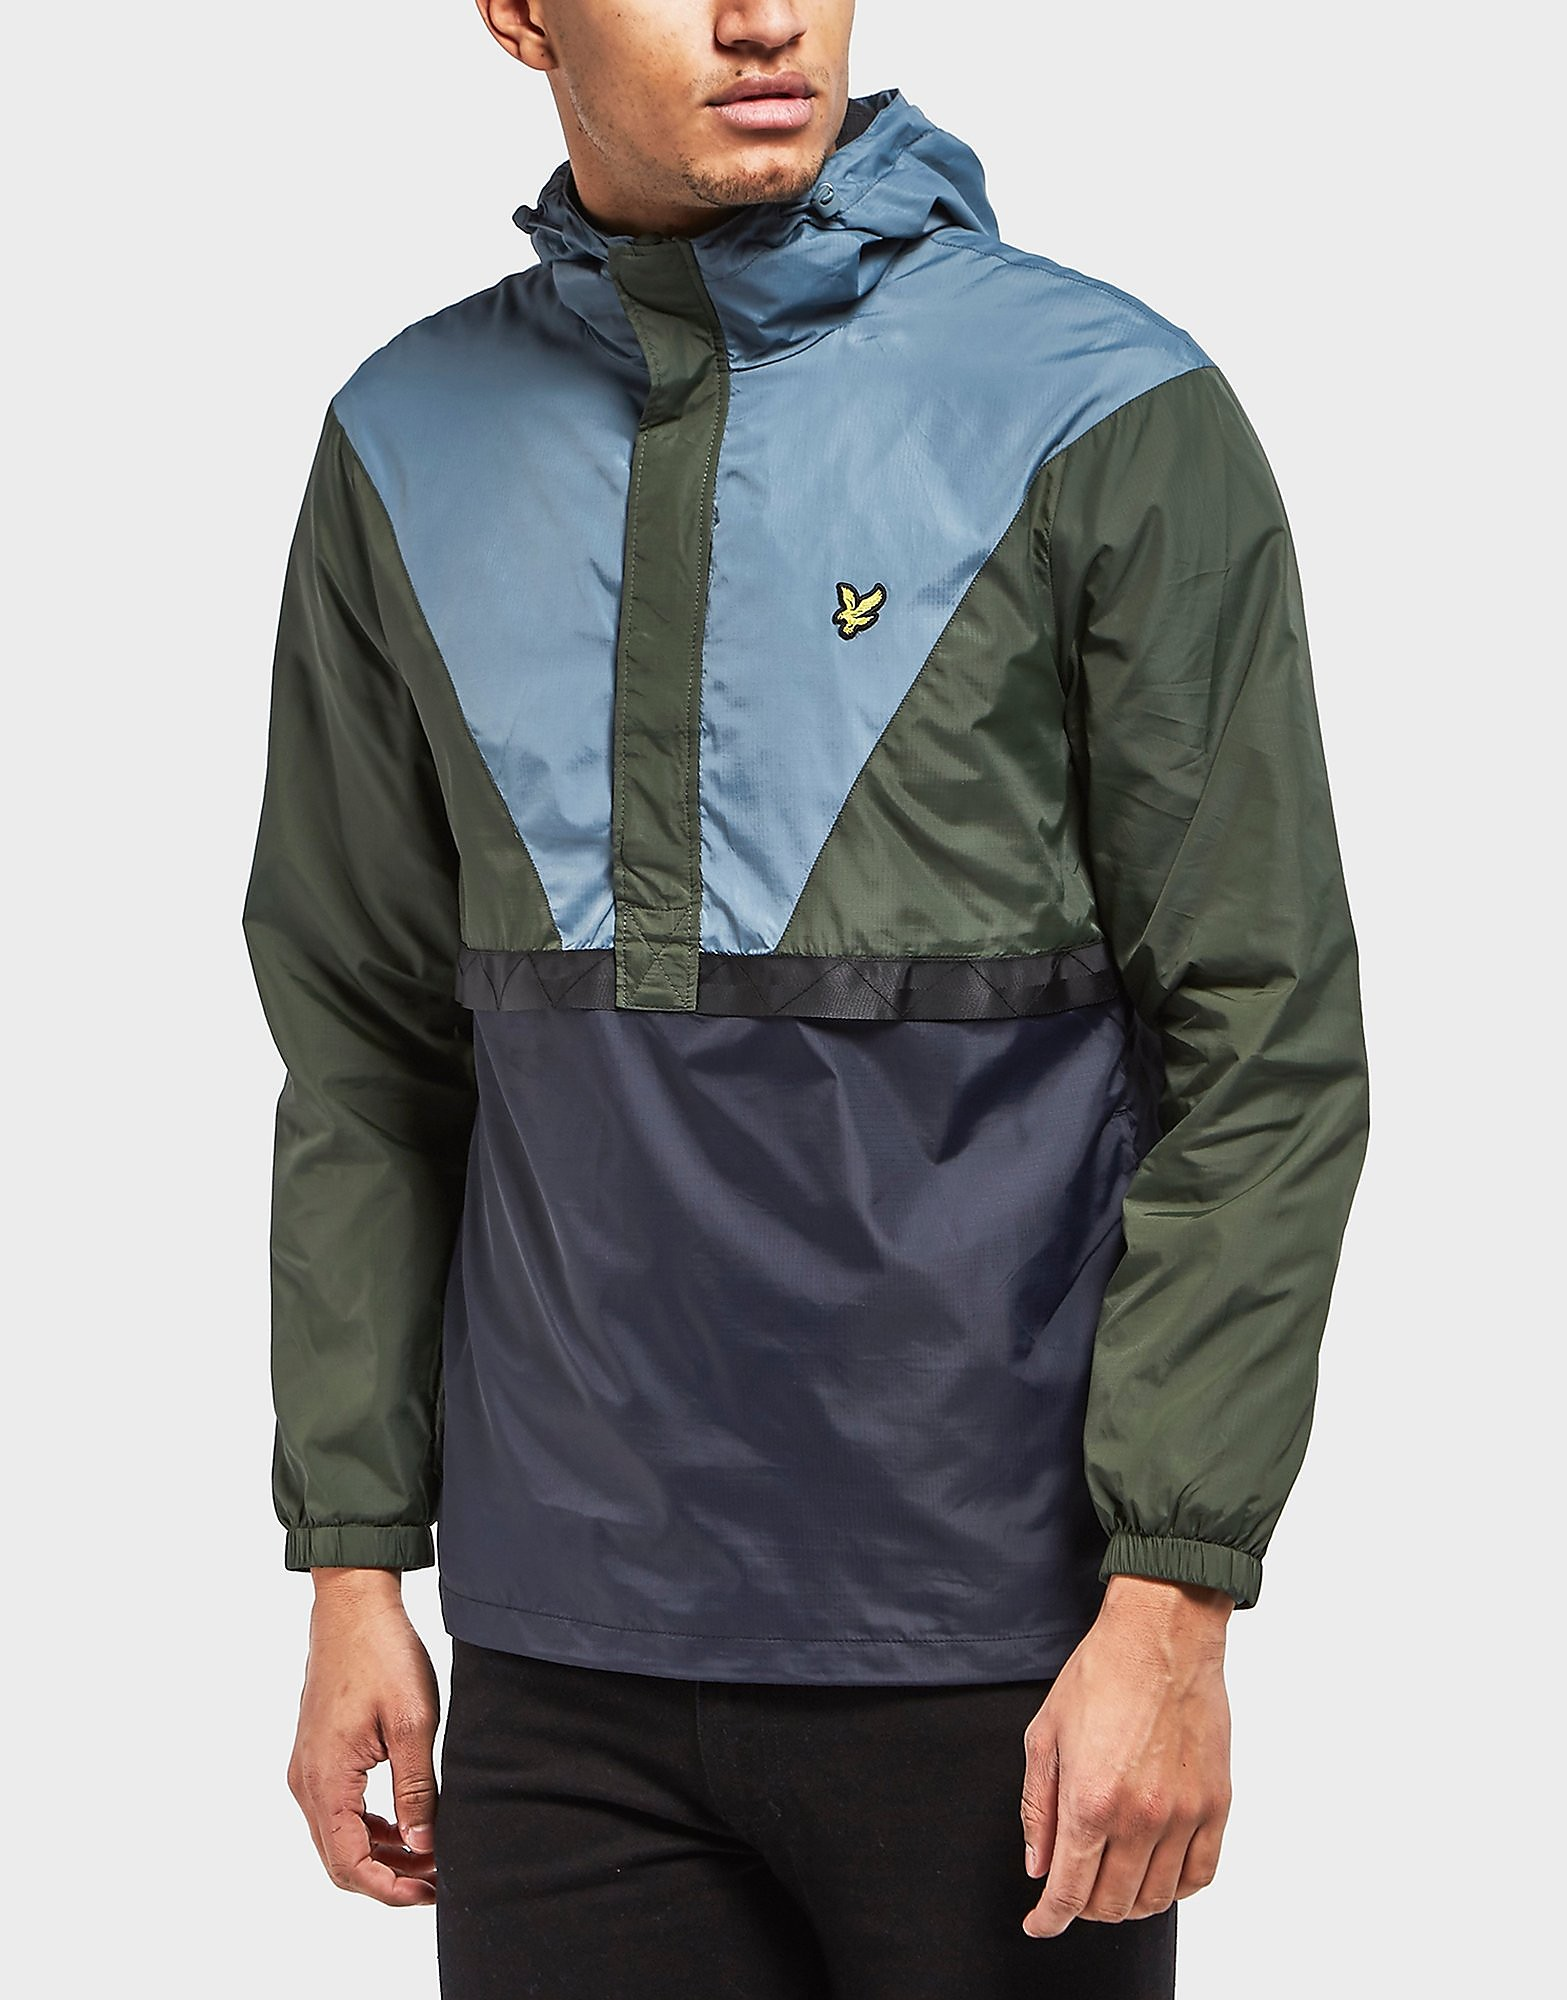 Lyle & Scott Lightweight Half-Zip Jacket